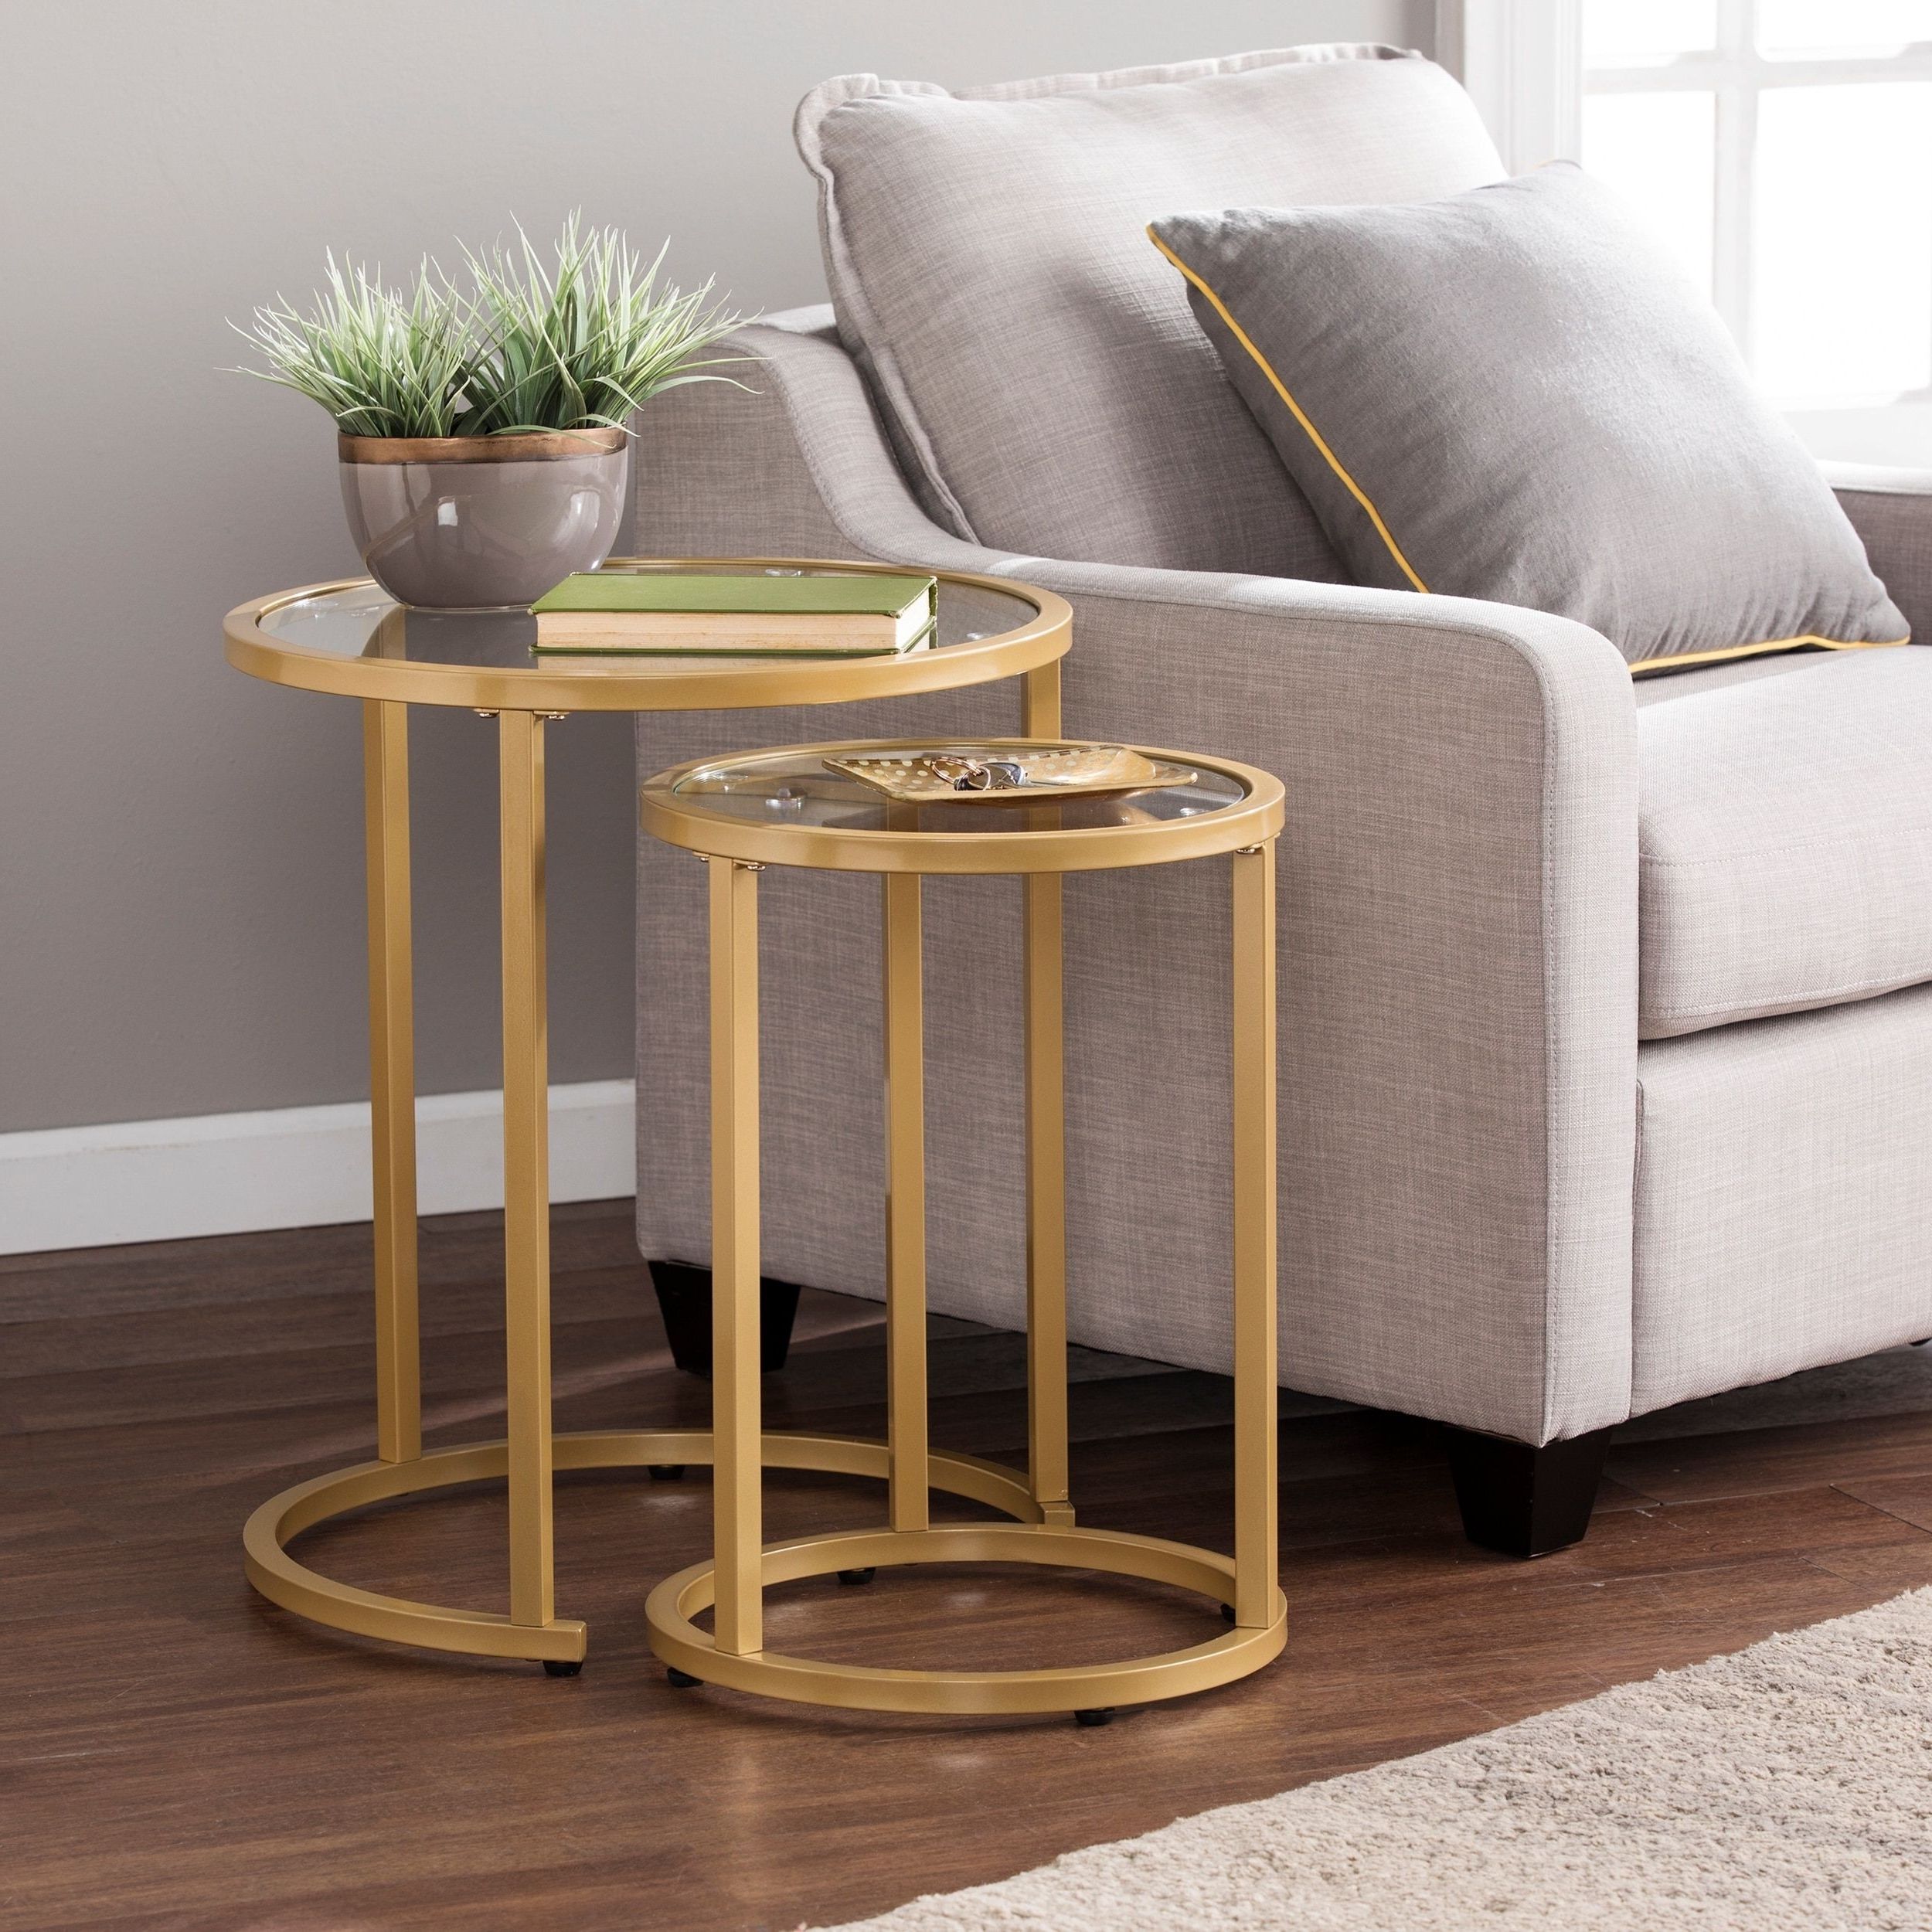 Newest Silver Orchid Grant Glam Nesting Cocktail Tables Throughout Silver Orchid Grant Glam Nesting Side Table 2pc Set – Gold (View 10 of 20)